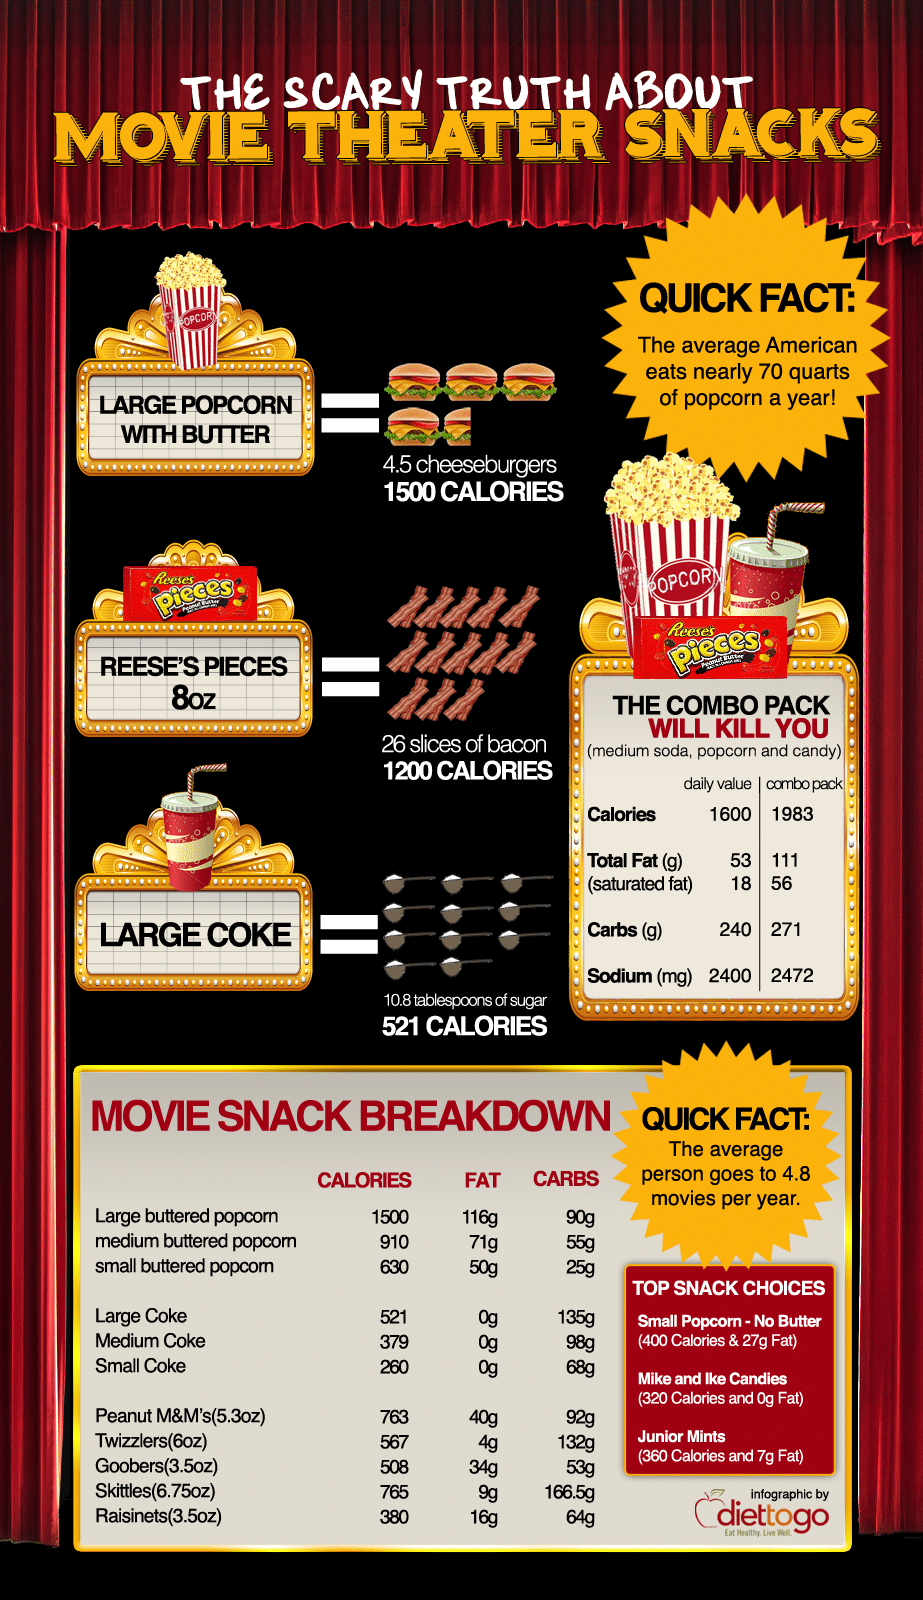 Movie Snack Breakdown: The Scary Truth